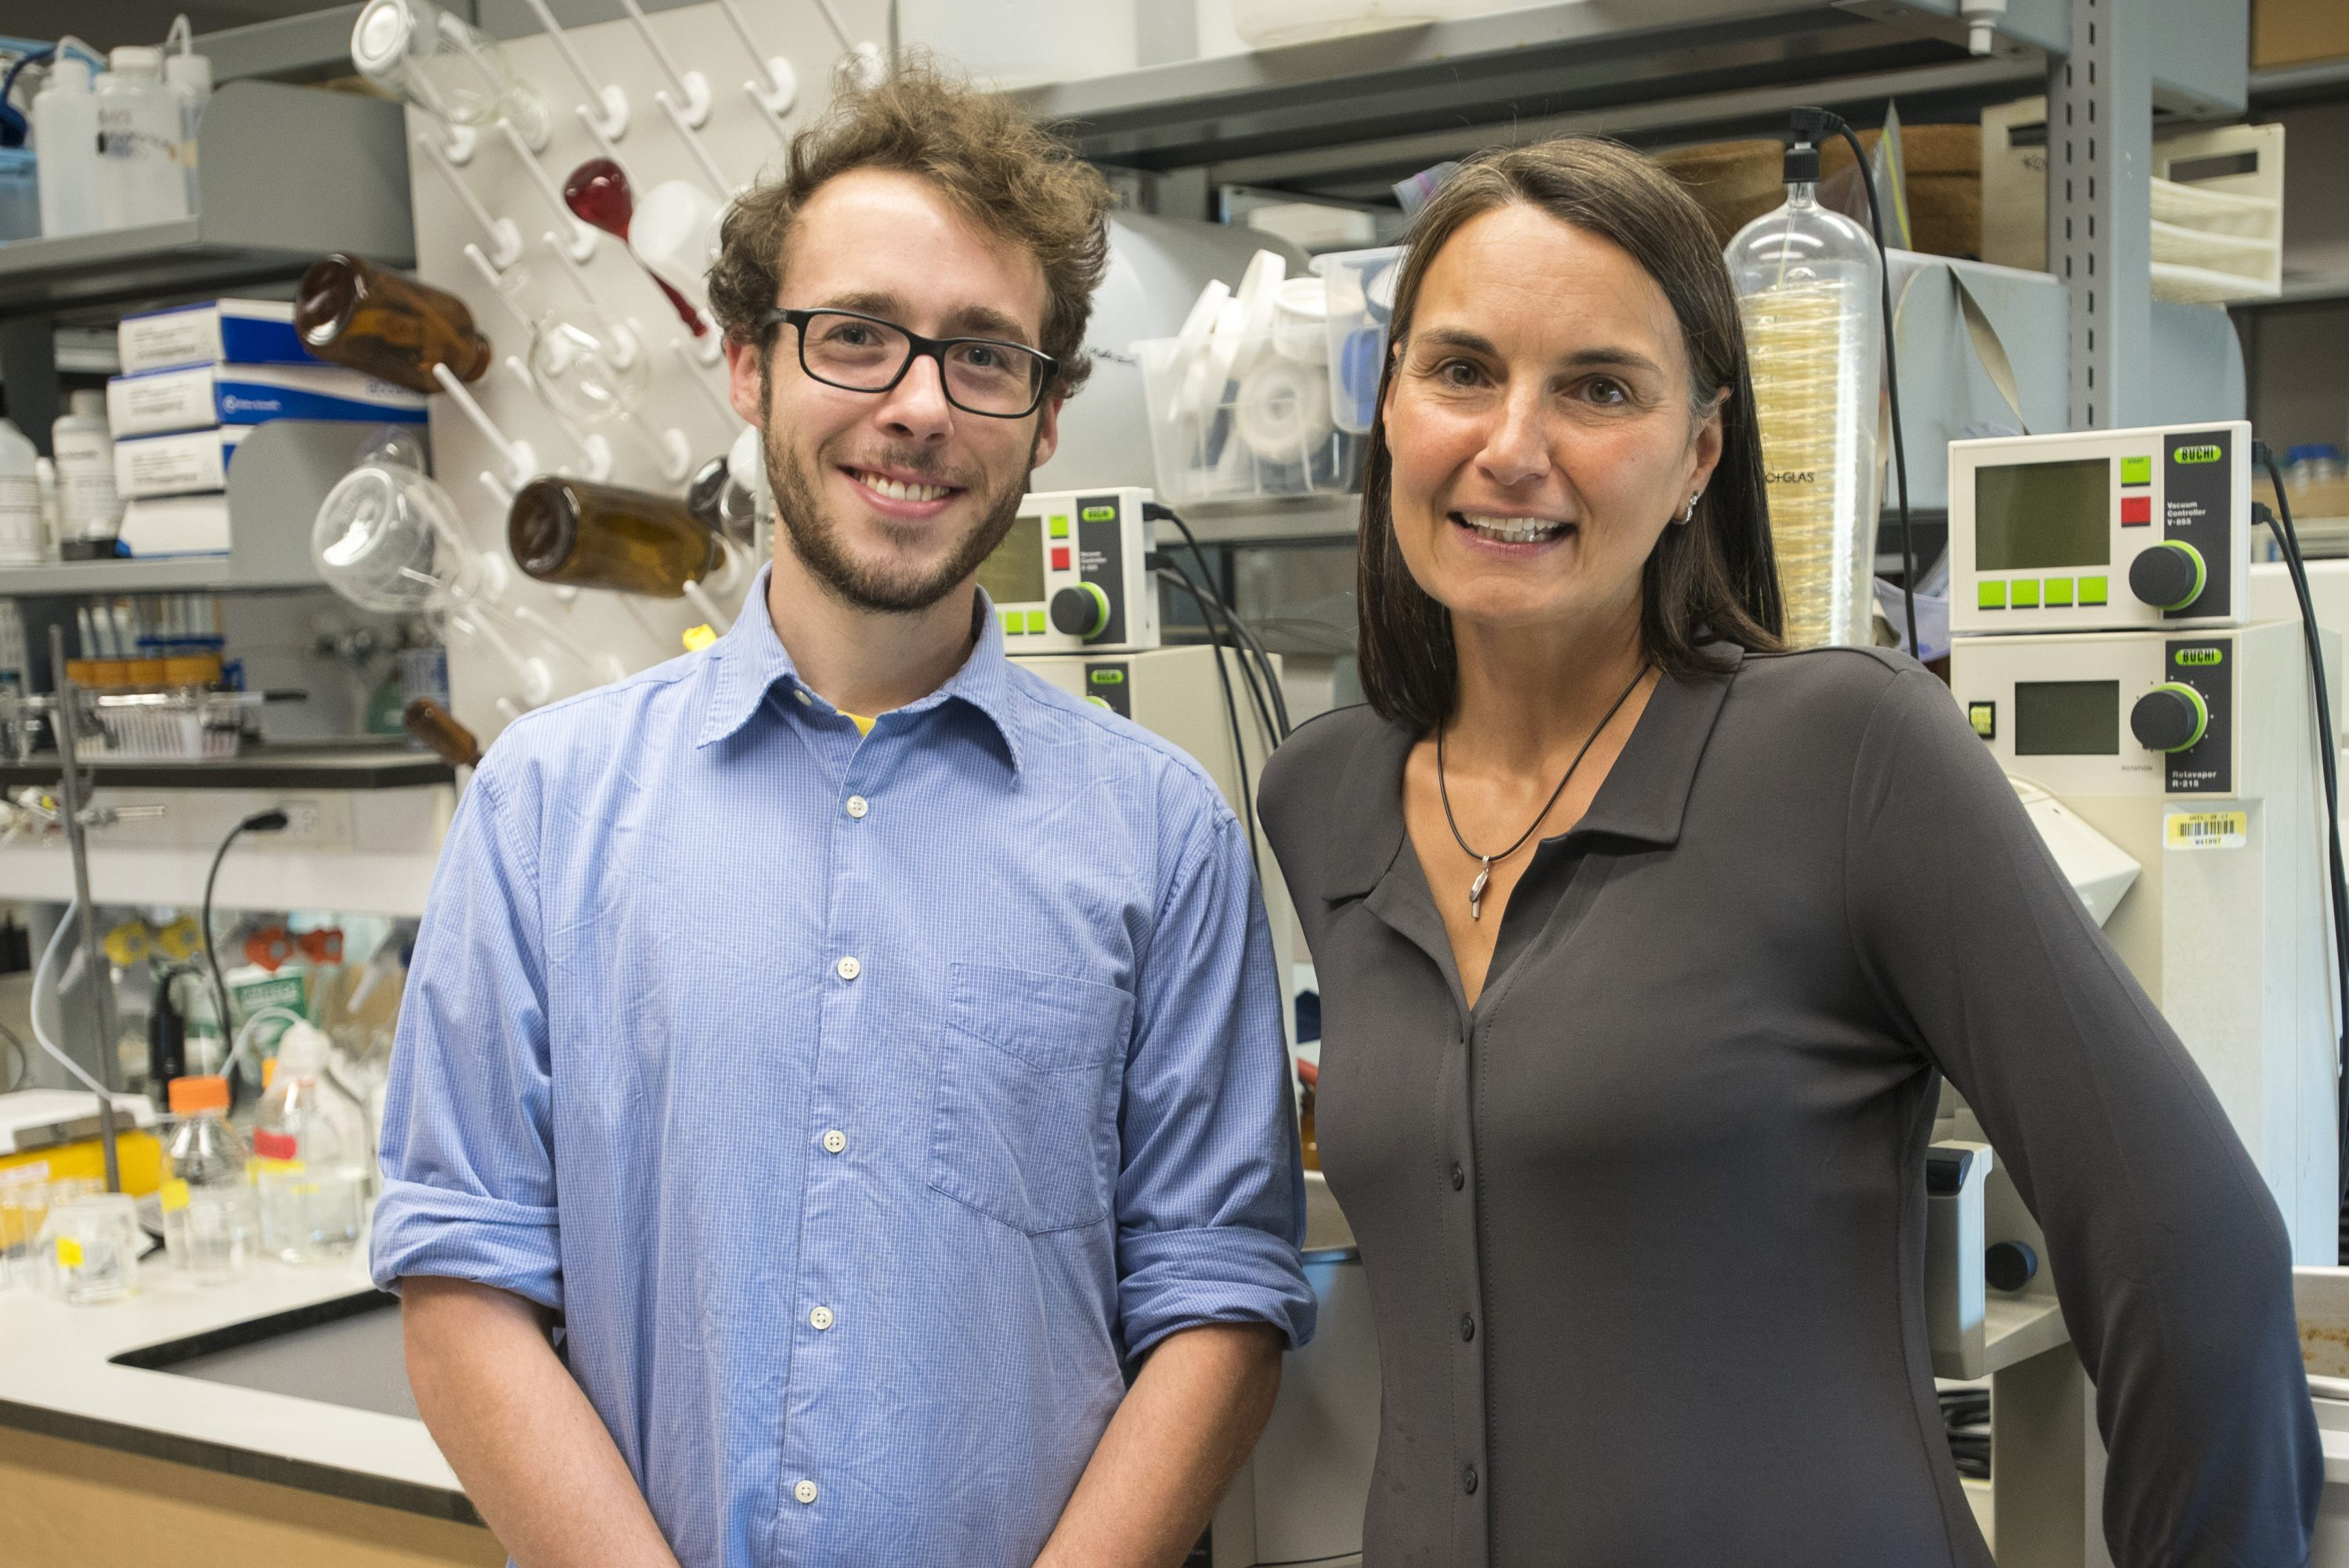 Professor Penny Vlahos, and graduate assistant Joe Warren recipients of a grant from the University's new National Science Foundation Innovation Corps Site, Accelerate UConn on Aug. 18, 2016. (Sean Flynn/UConn Photo)